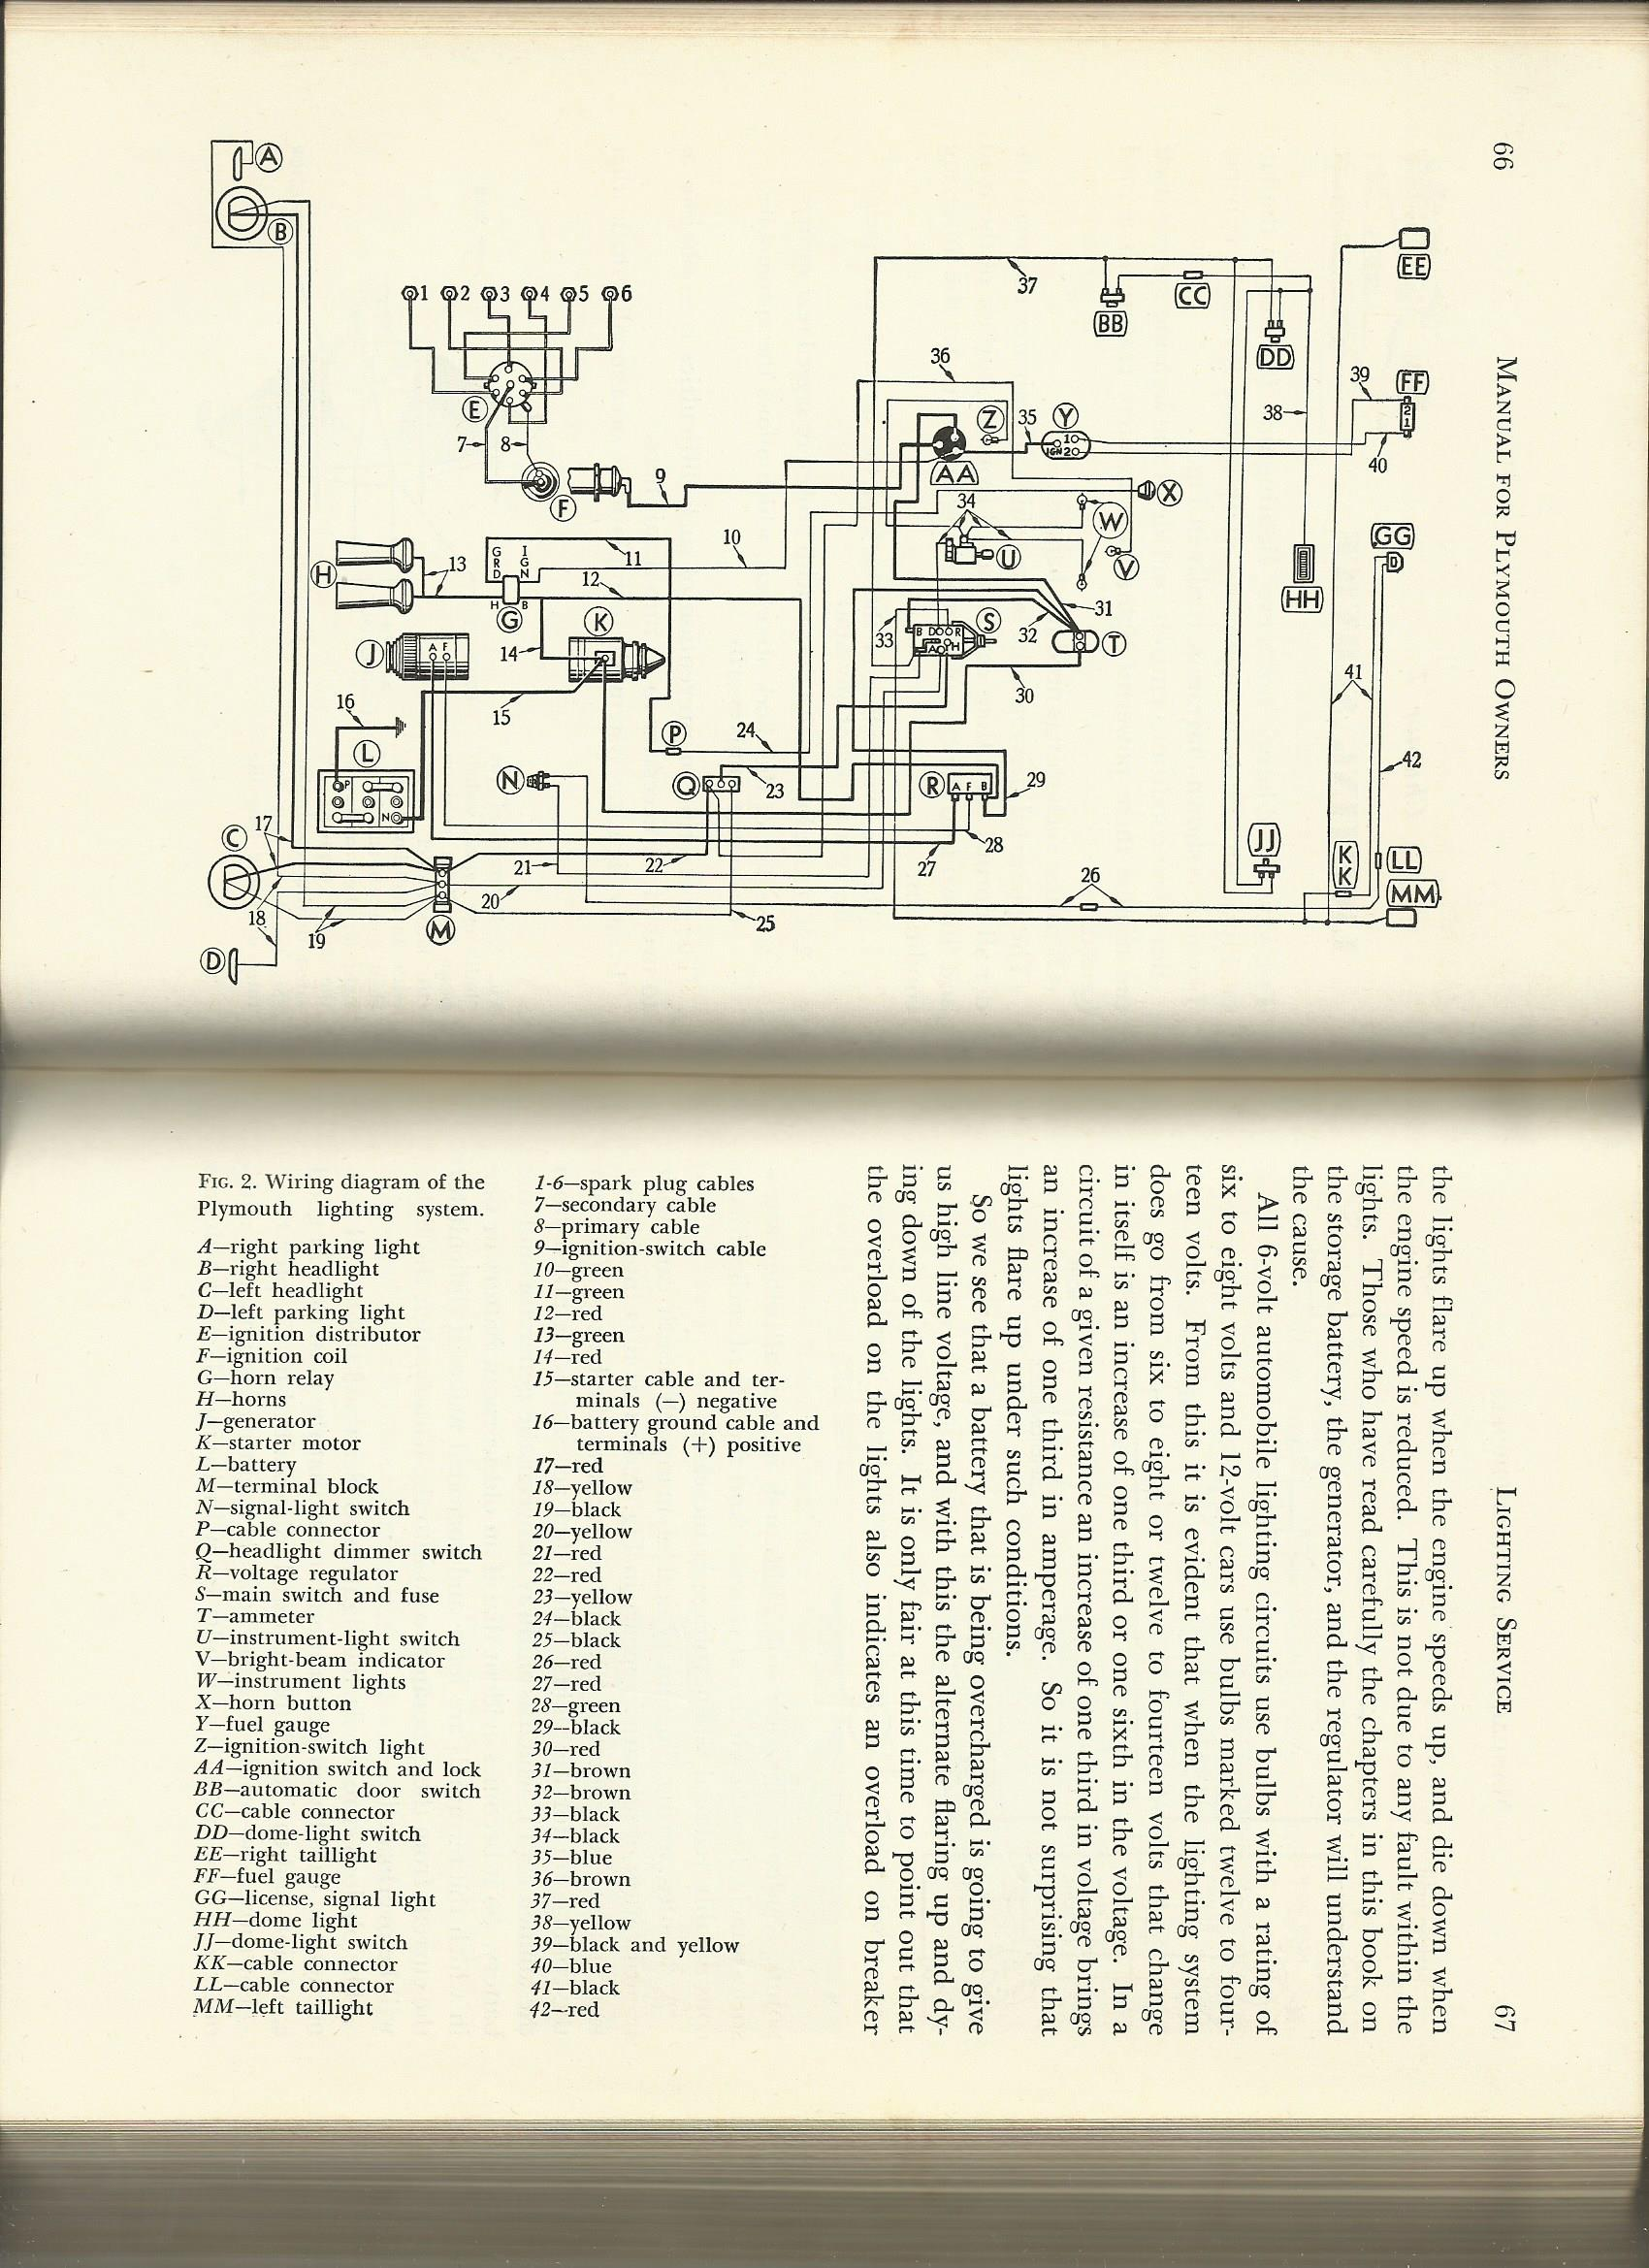 1953 plymouth cranbrook wiring diagram howdy  i m new here p15 d24 forum p15 d24 com and pilot house com  howdy  i m new here p15 d24 forum